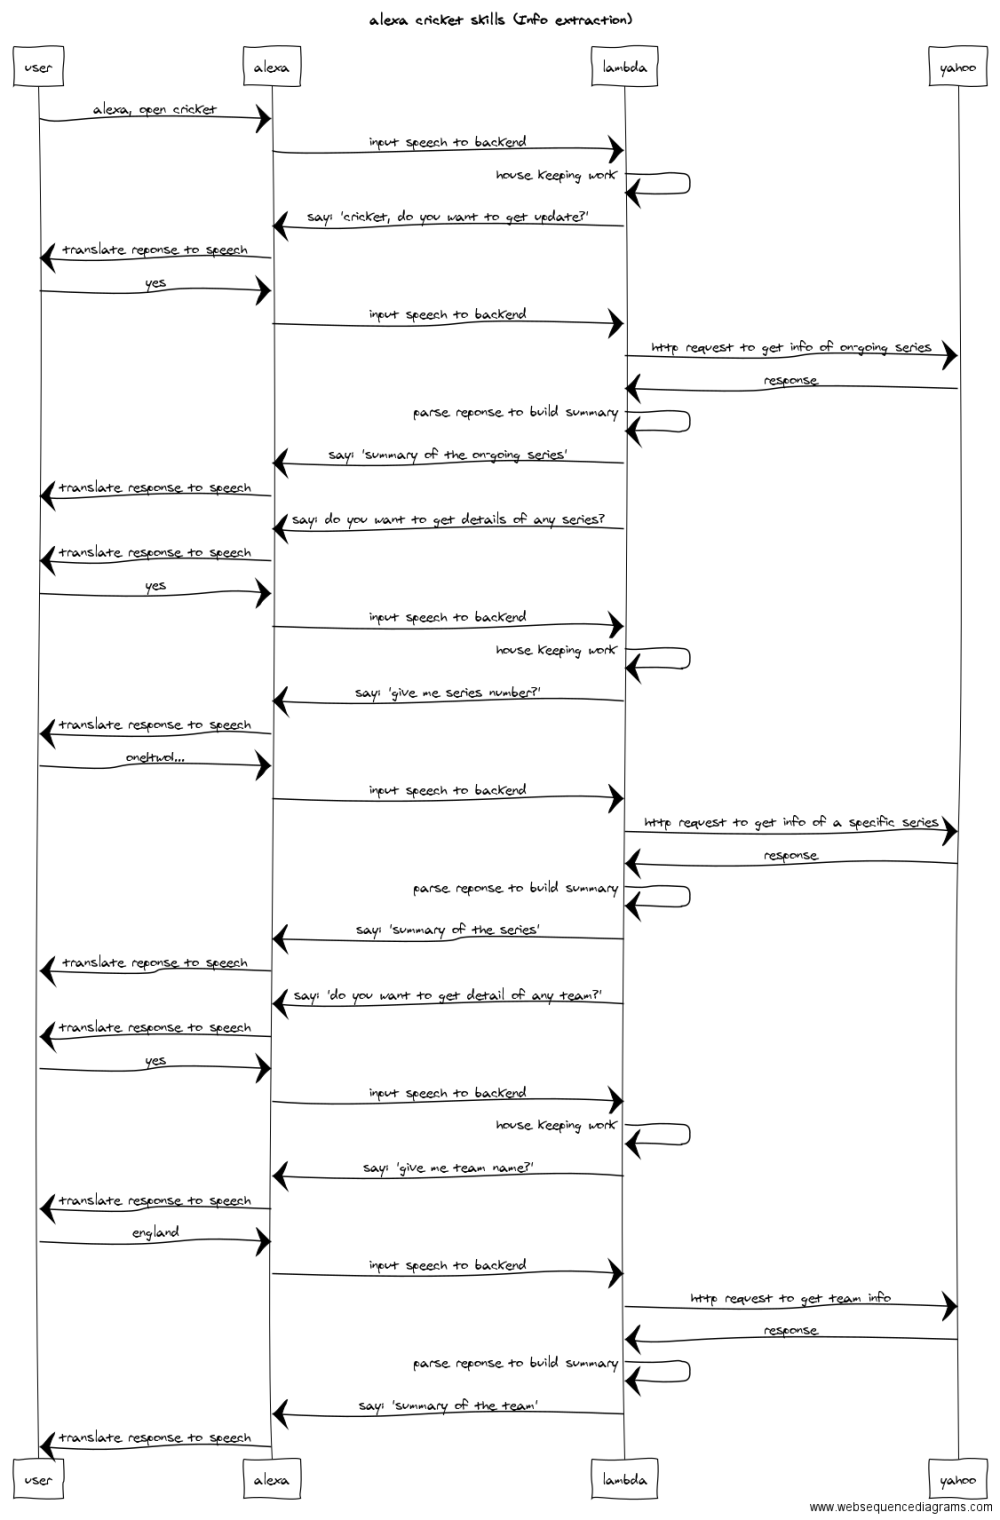 medium resolution of sequence diagram to understand how communication b w different components work for extracting cricket related information